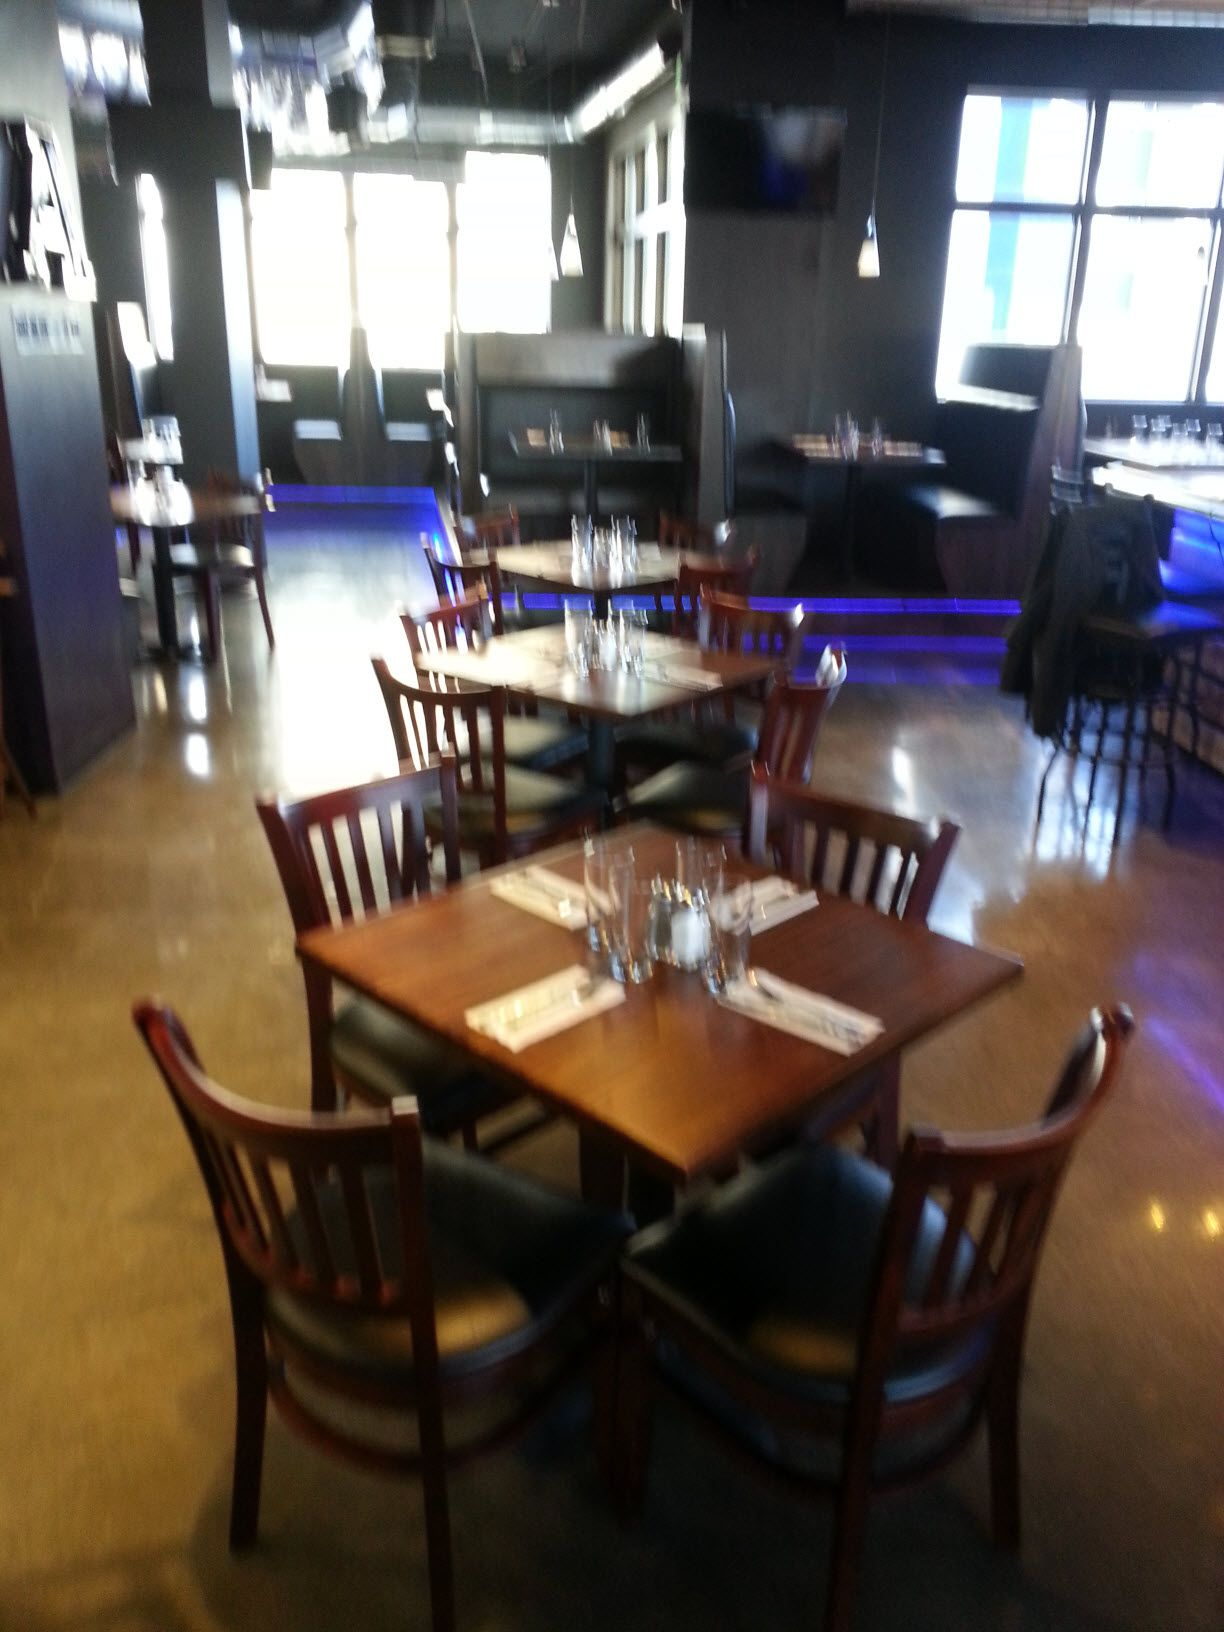 Restaurant Furniture. Net Premium US Made Vertical Slat Wood Chairs In  Bullu0027s Head Pizzeria And Grille In Logan, UT